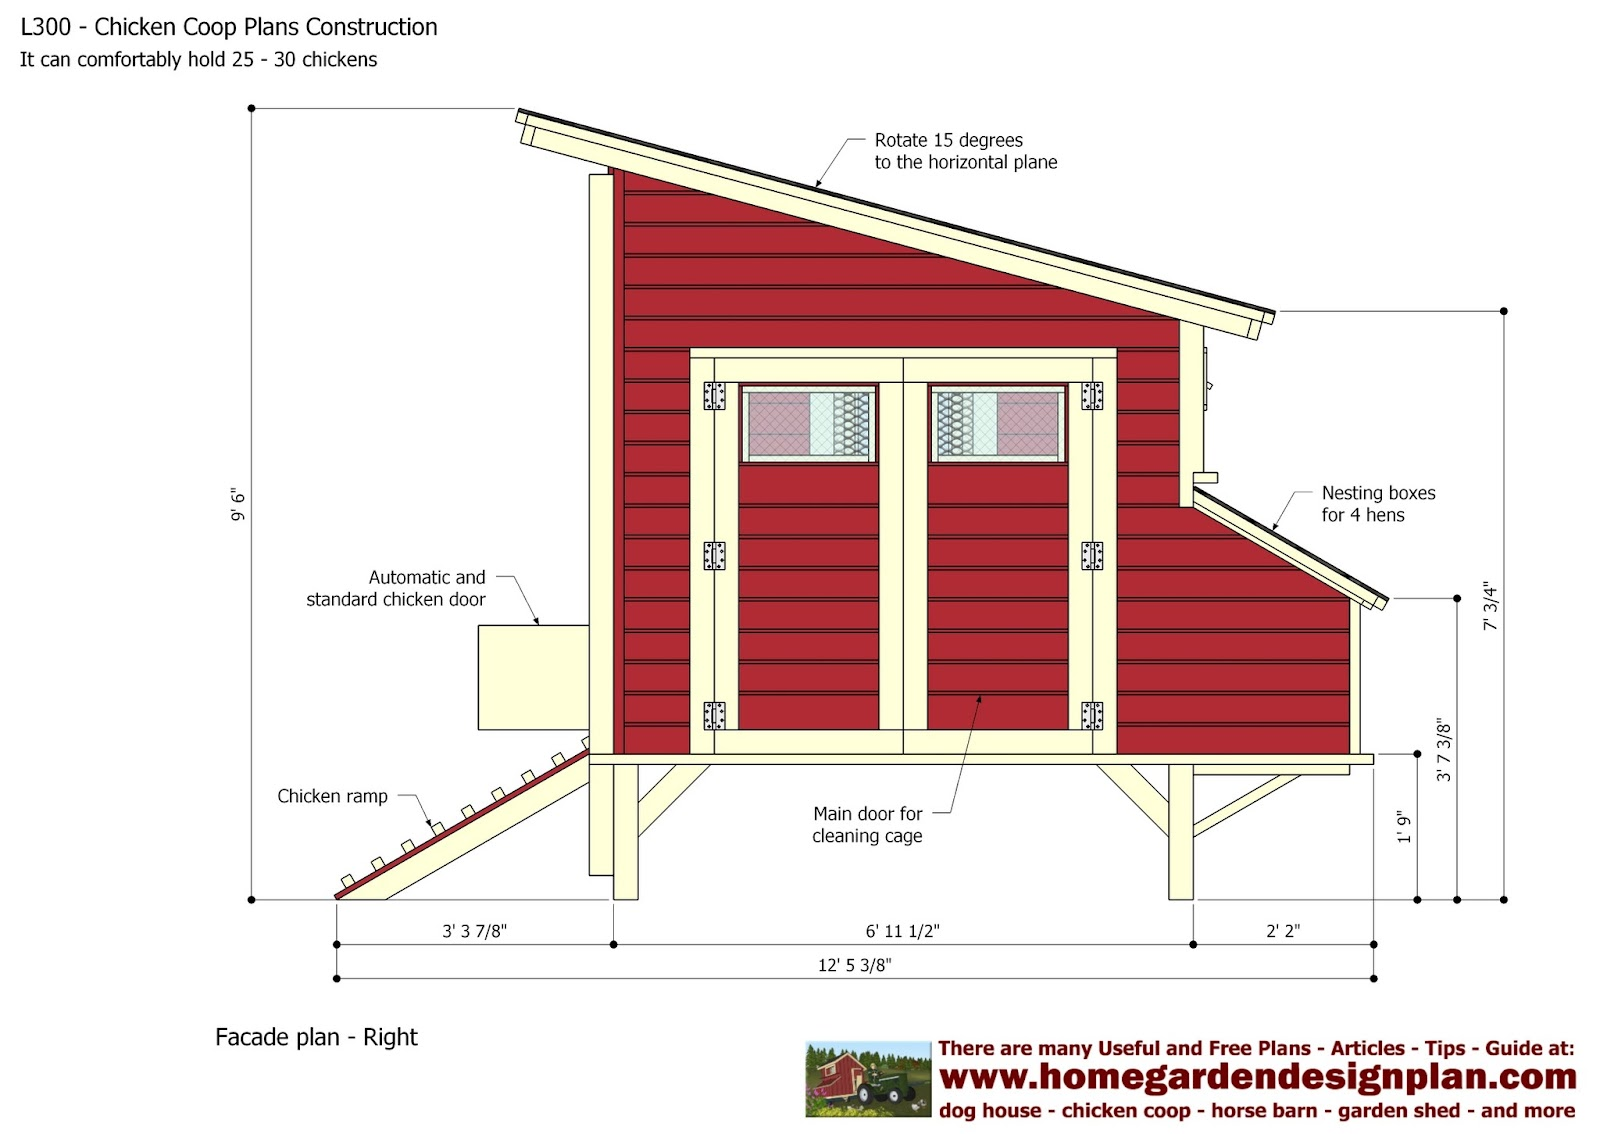 Dewa coop this is building a chicken coop pdf download for Chicken coop plans free pdf